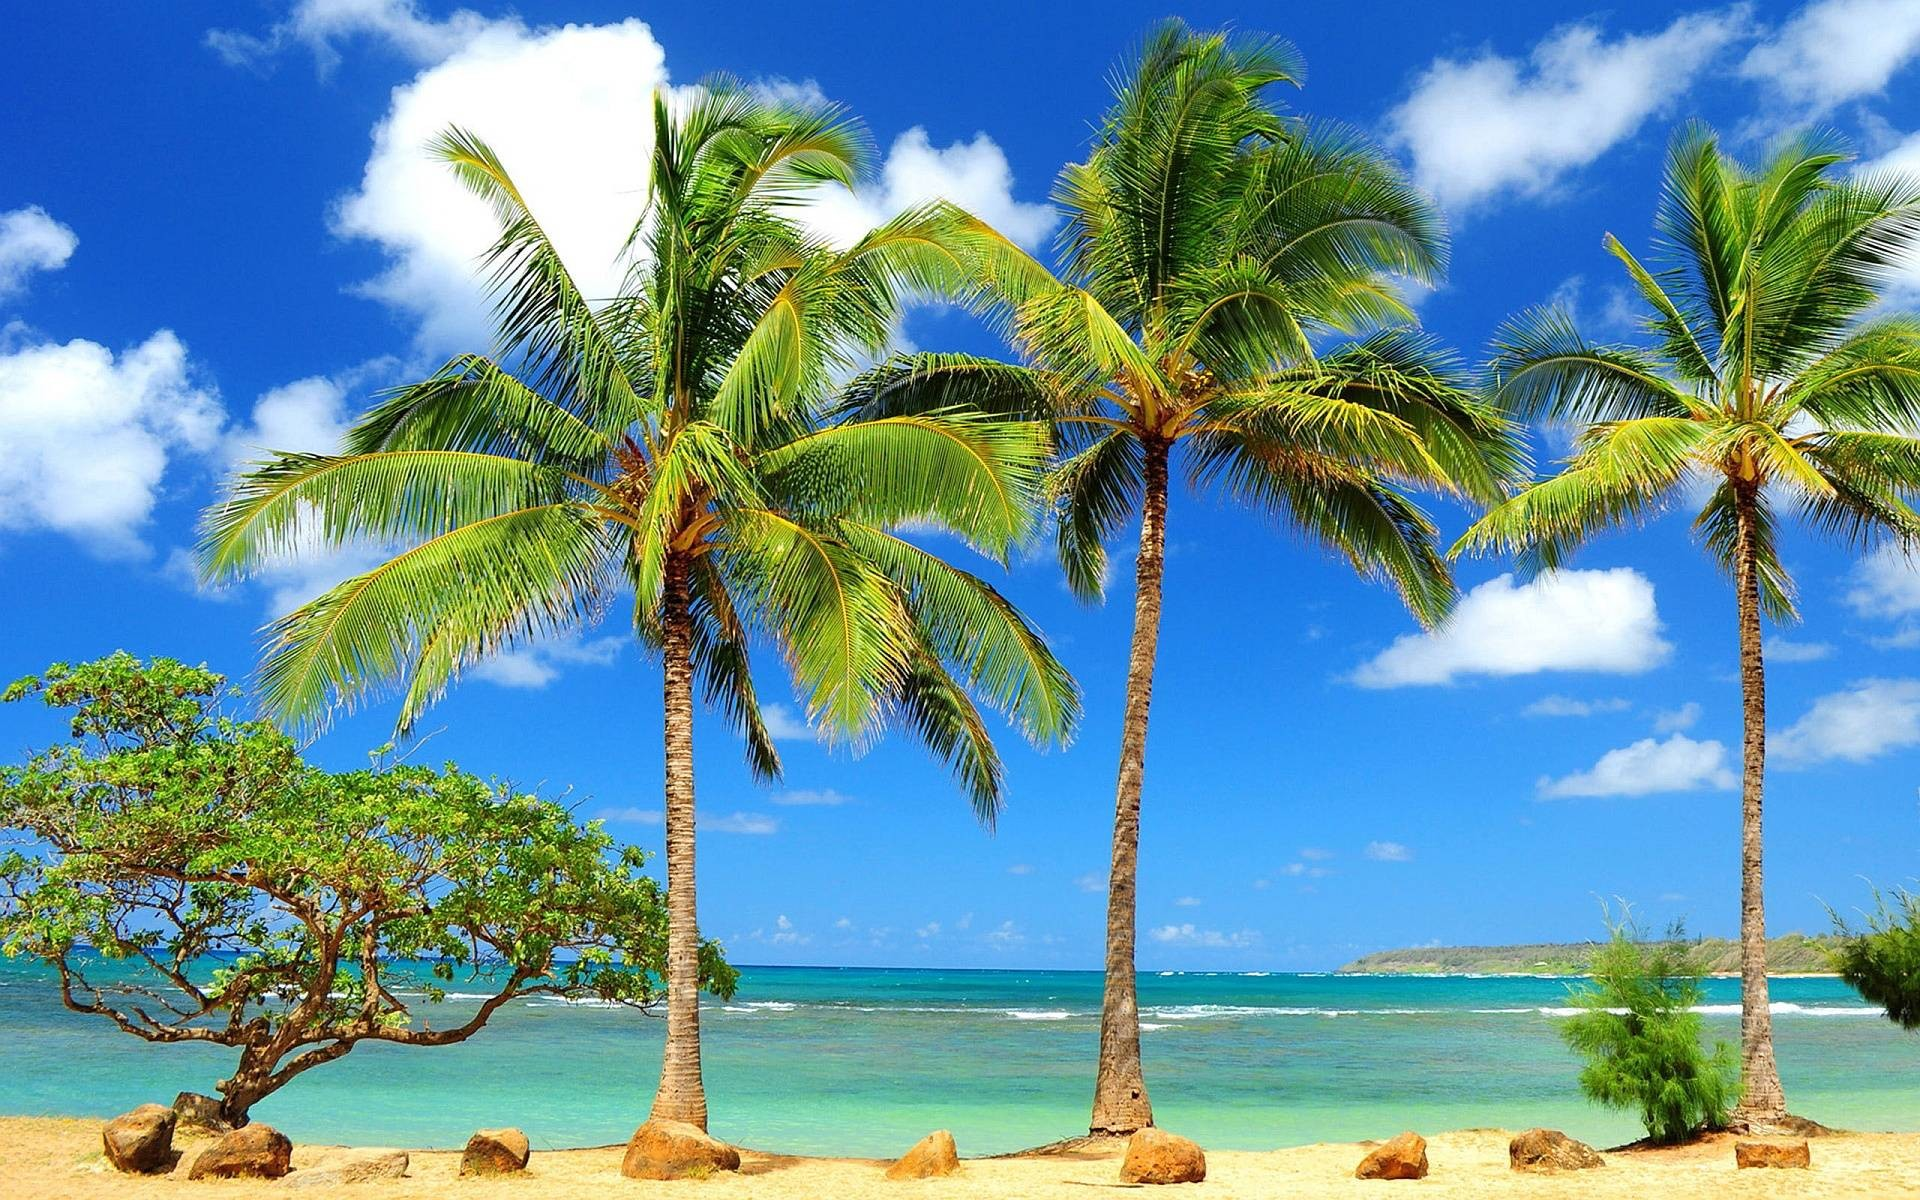 Palm tree background download free hd backgrounds for desktop and mobile devices in any - Palm tree wallpaper for android ...